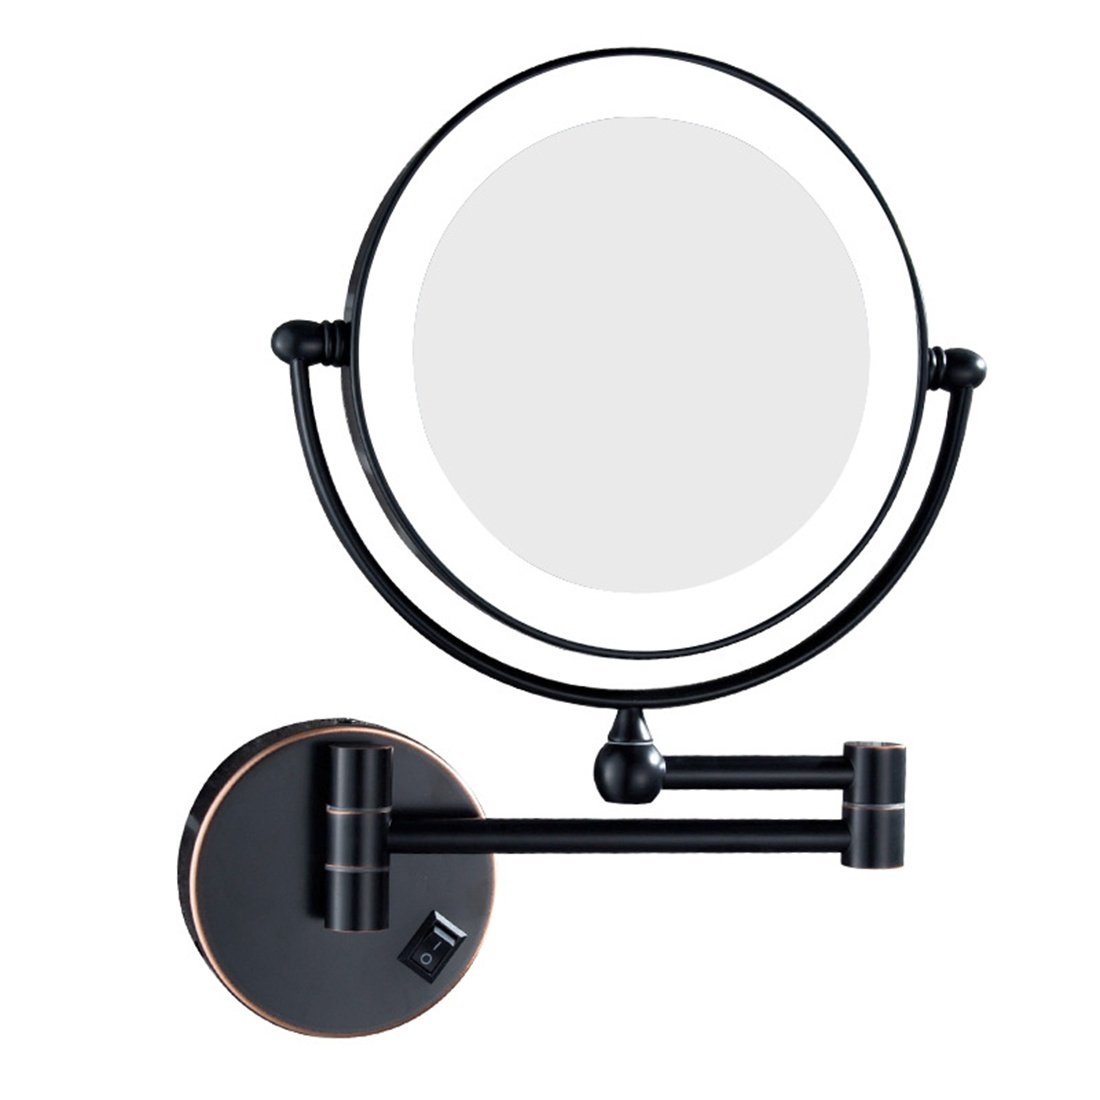 Metcandy Plug In Operated Led Lighted Makeup Mirror Wall Mounted Double Sided Illuminated Magnifying Beauty 360 Free Rotating Vanity Mirror Black 3x Buy Online In India At Desertcart In Productid 105500022